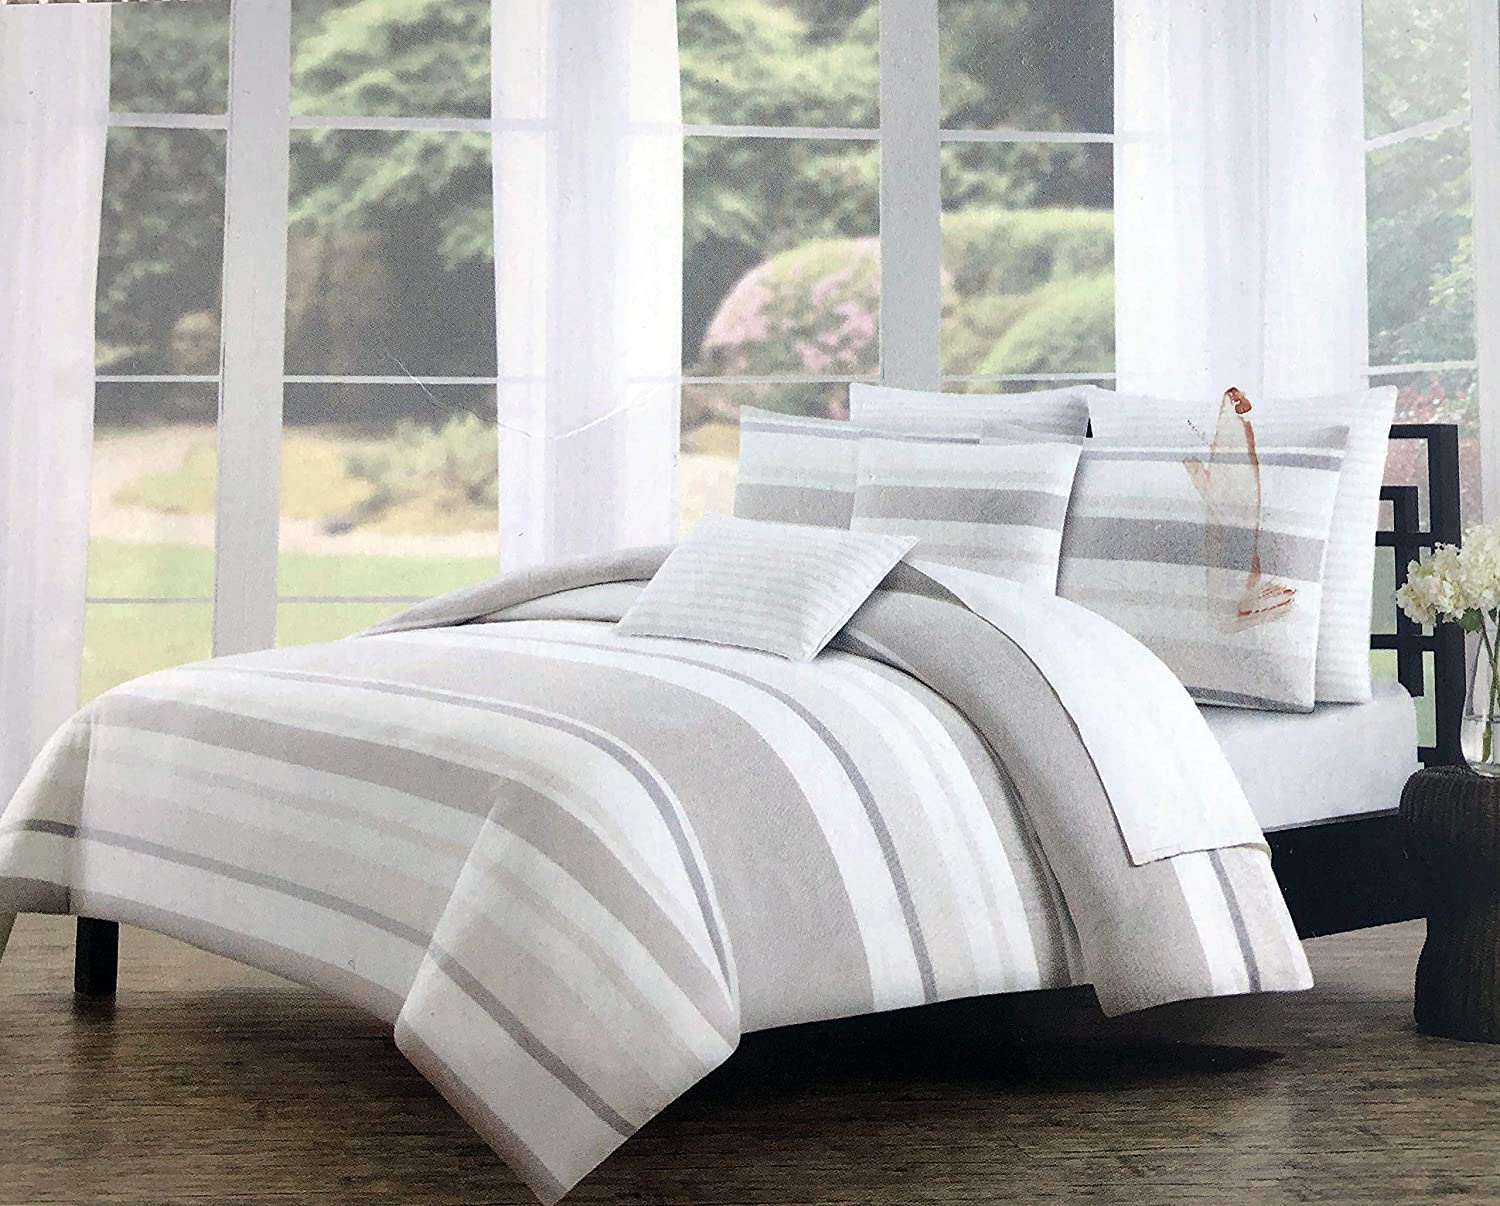 Tahari 3 Pc Duvet Cover Set Wide Horizontal Stripes in Neutral Shades of Cream, Tan and Beige Vintage Style Pattern 100% Cotton Luxury Quilt Comforter Cover (Full/Queen)